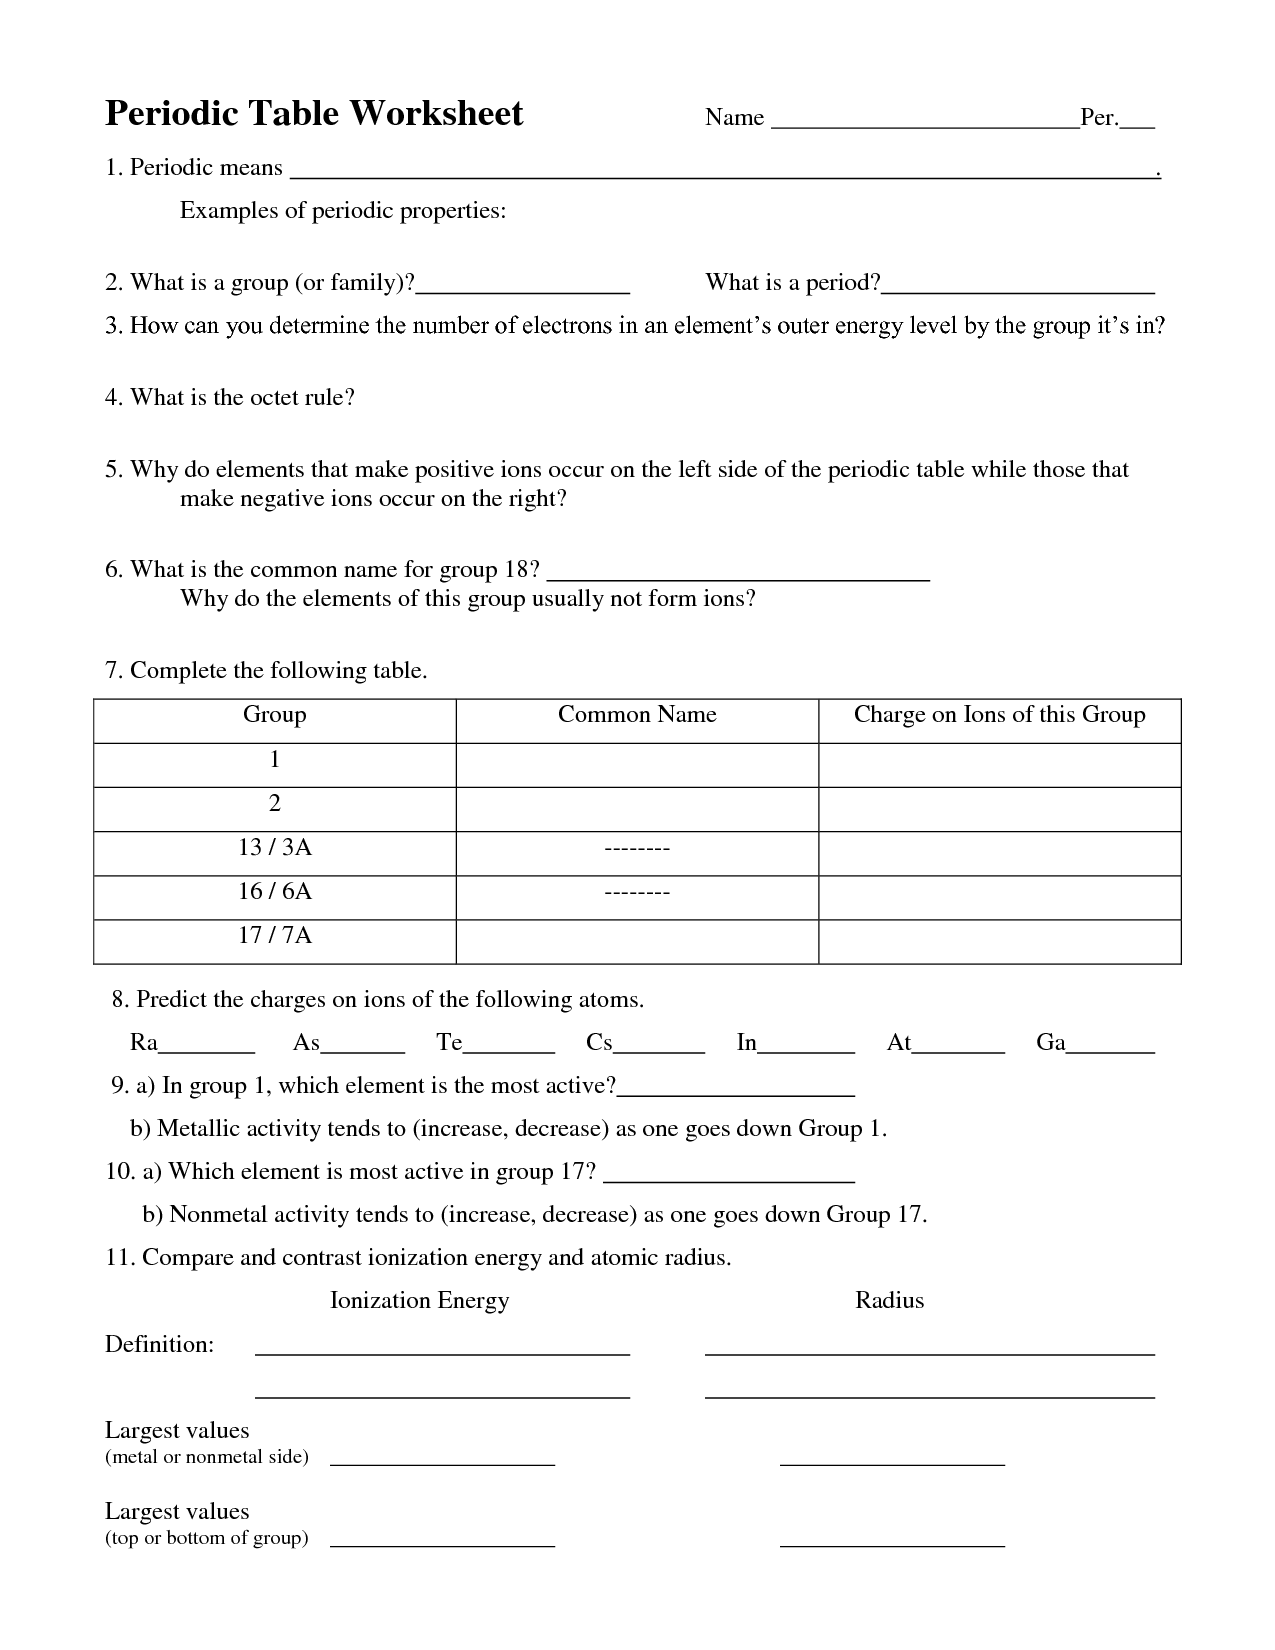 Chemistry Worksheet Answers 1